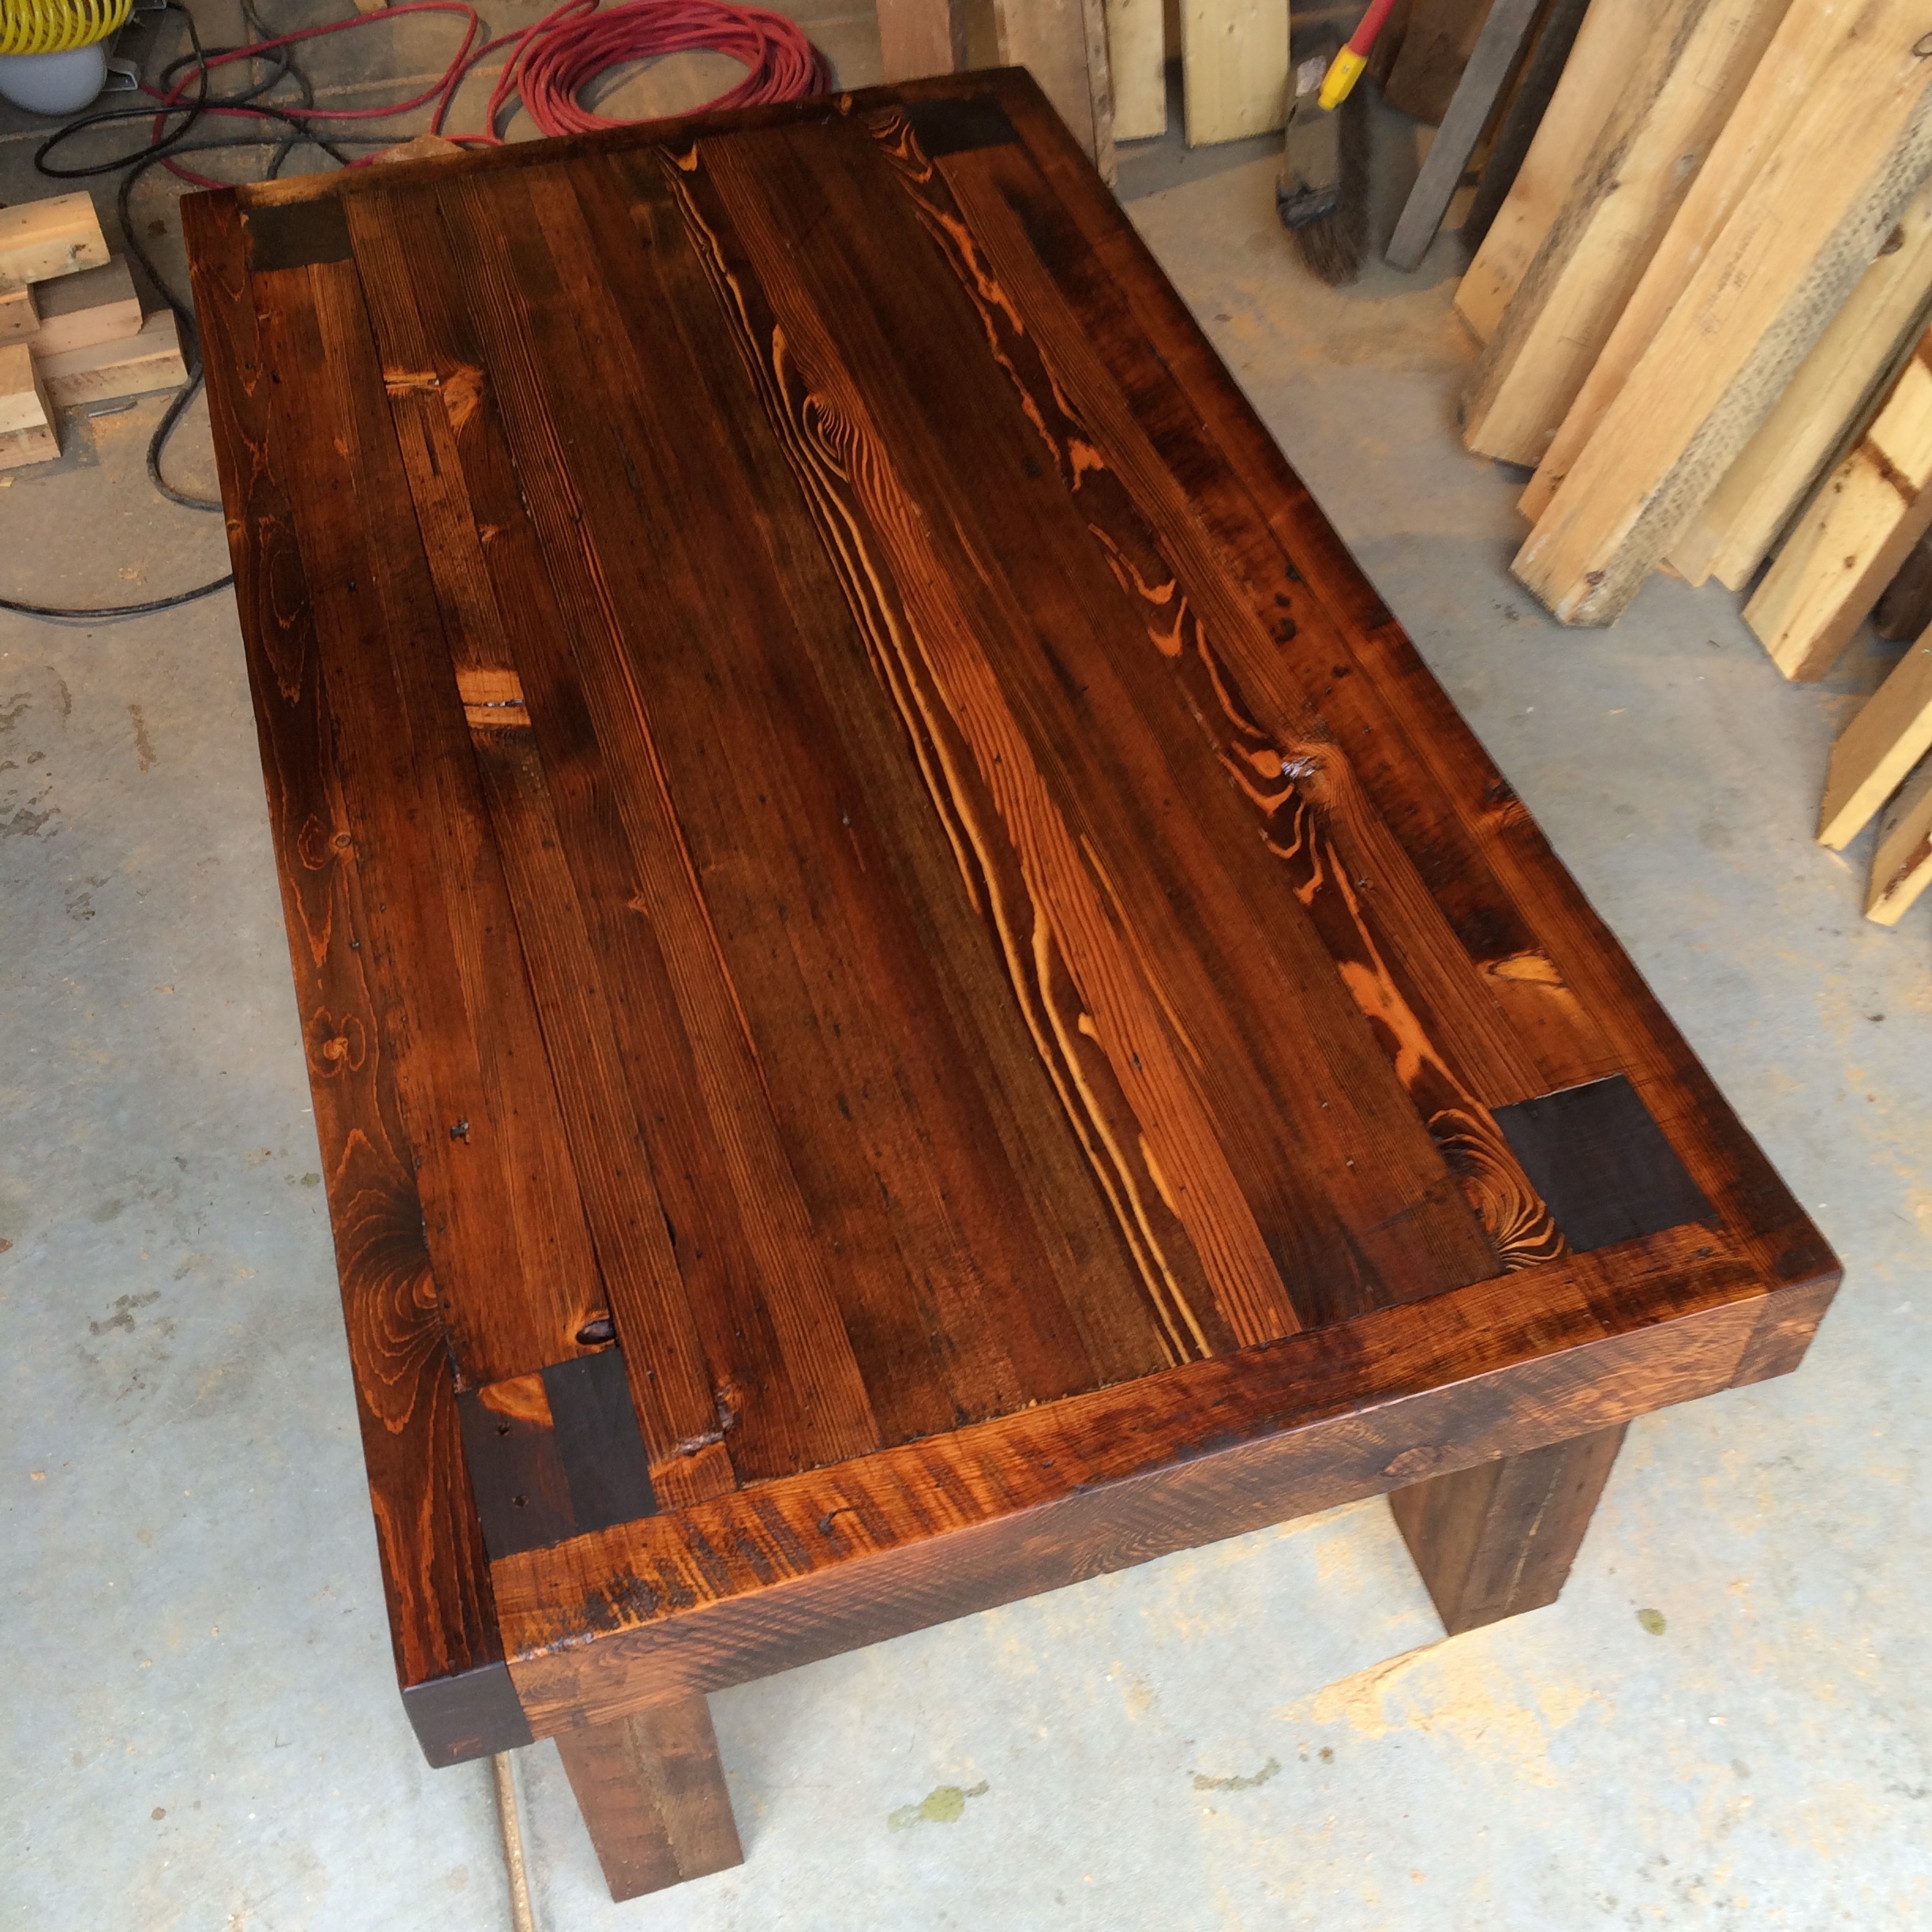 Large coffee table made form late 1800's wall studs. This material was pulled from a remodel project in Denver's Curtis park neighborhood.